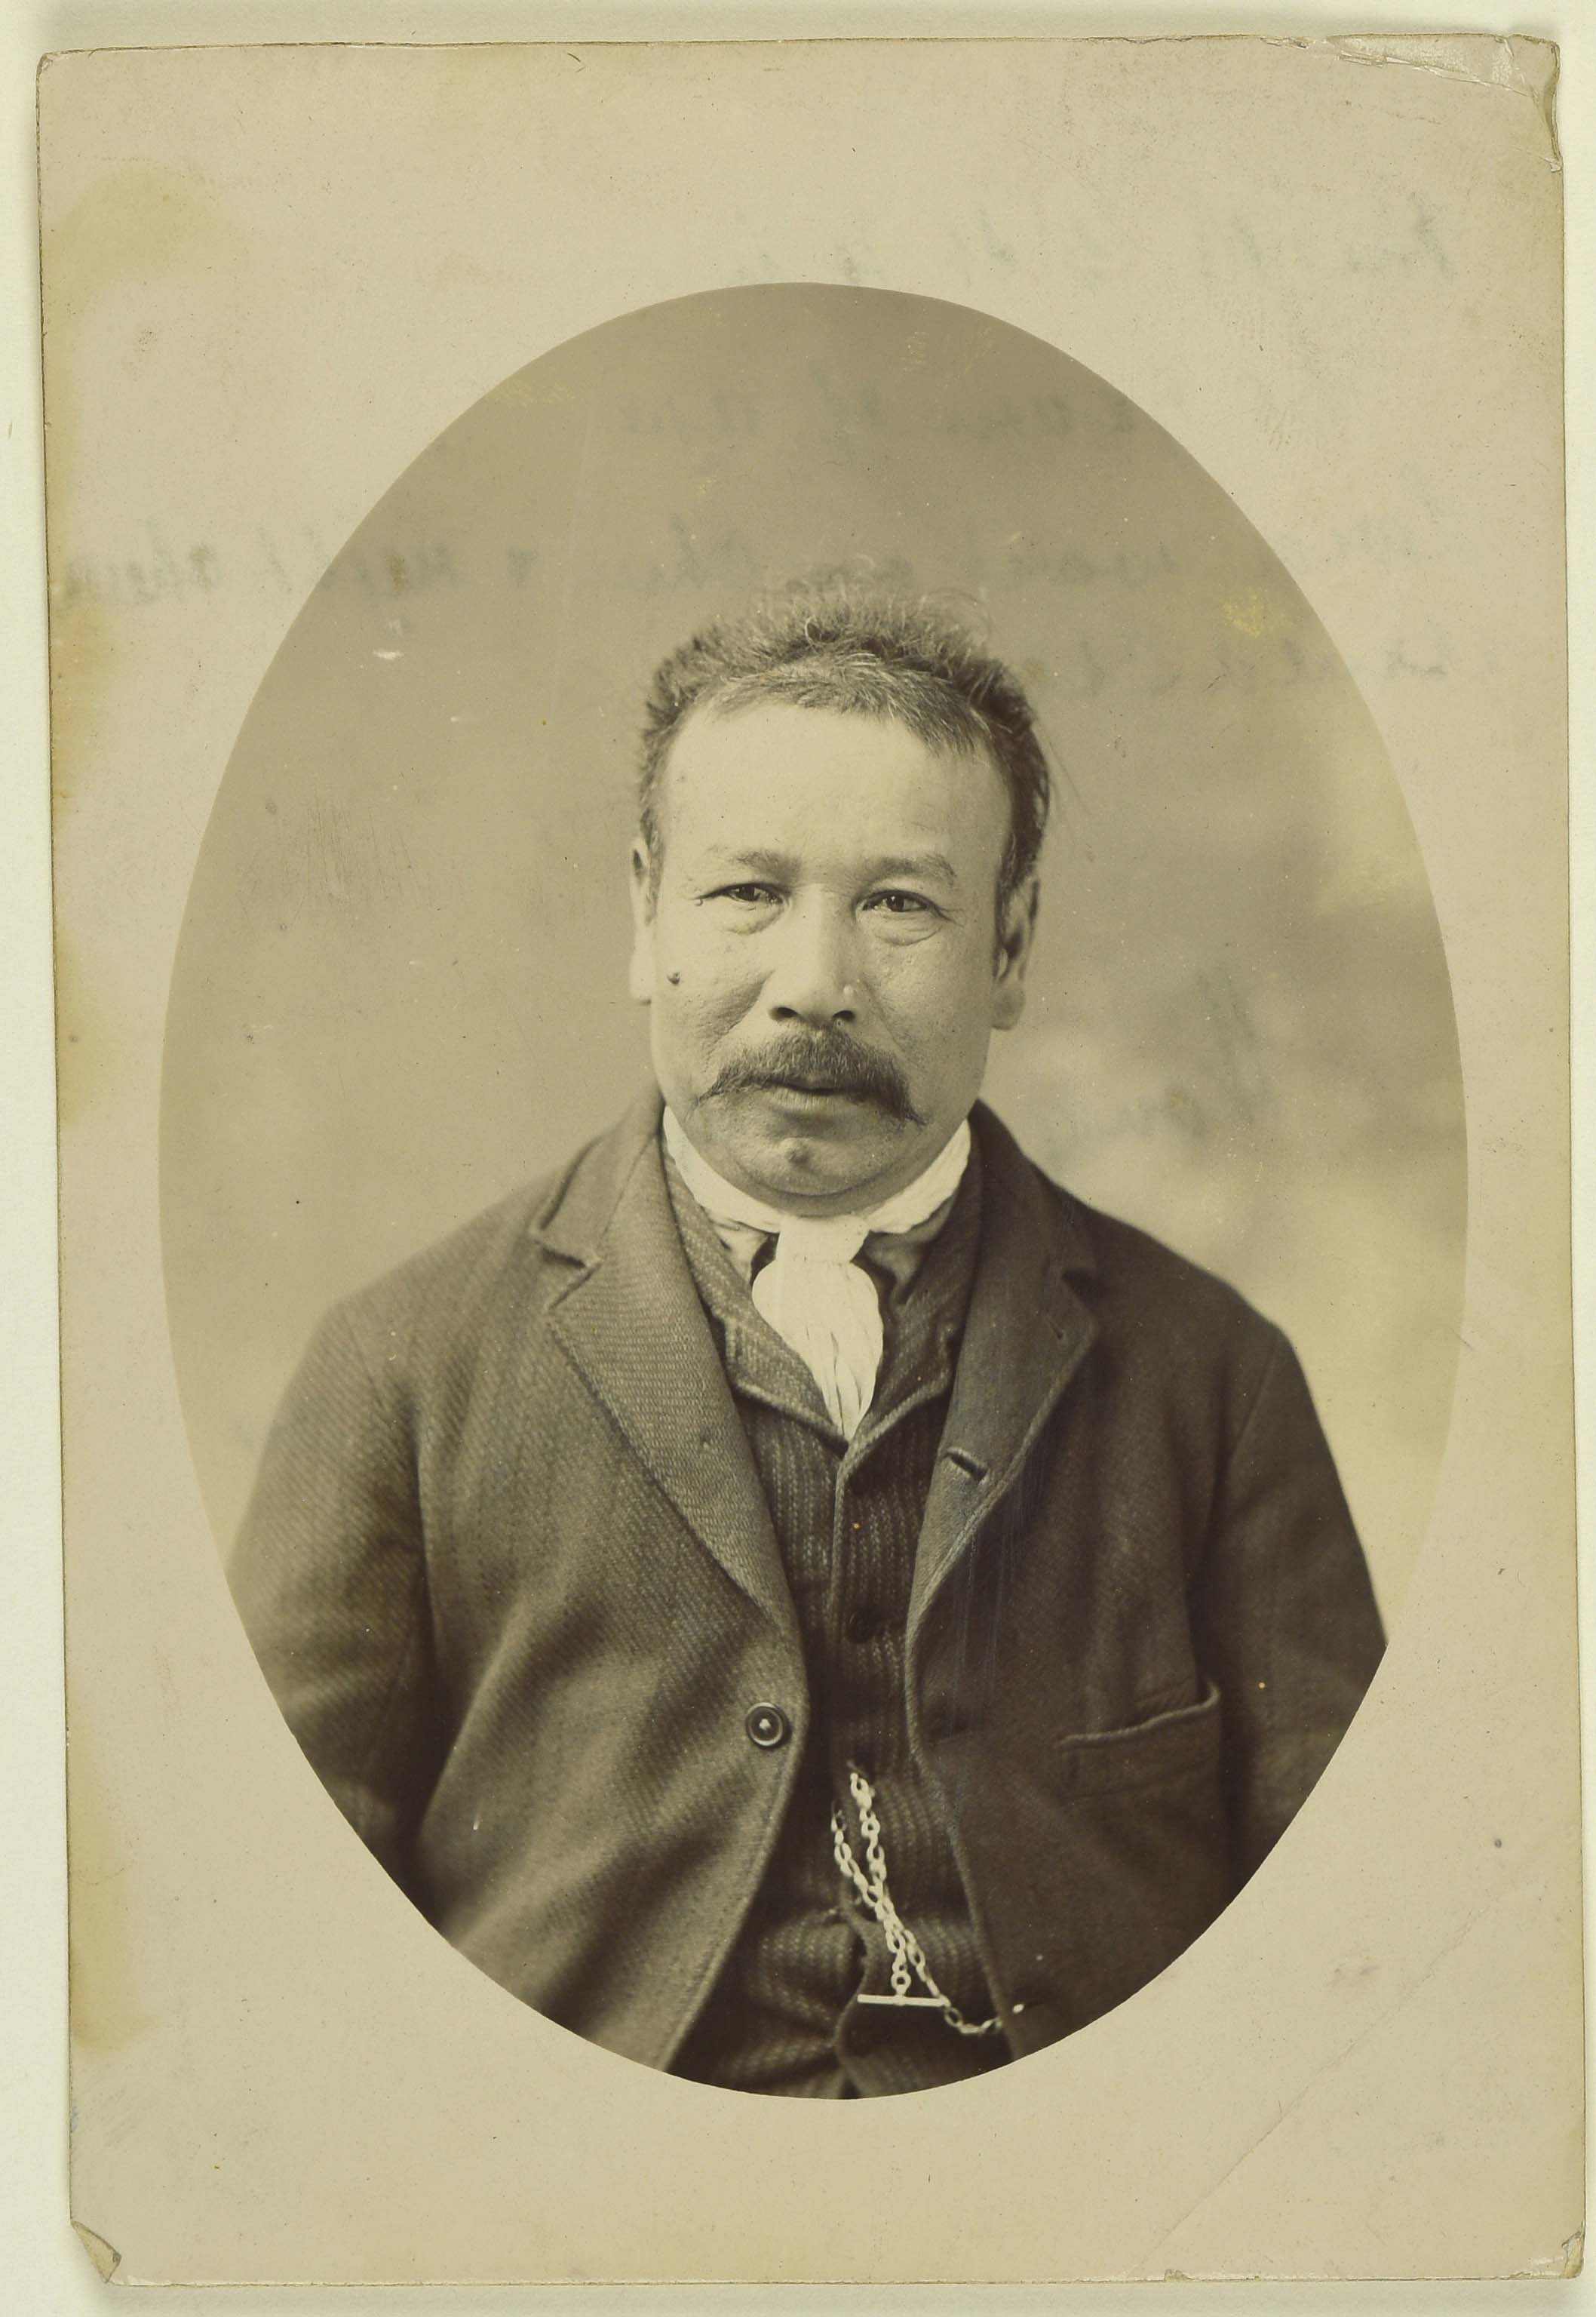 Sepia photo portrait of a Chinese man with a moustache